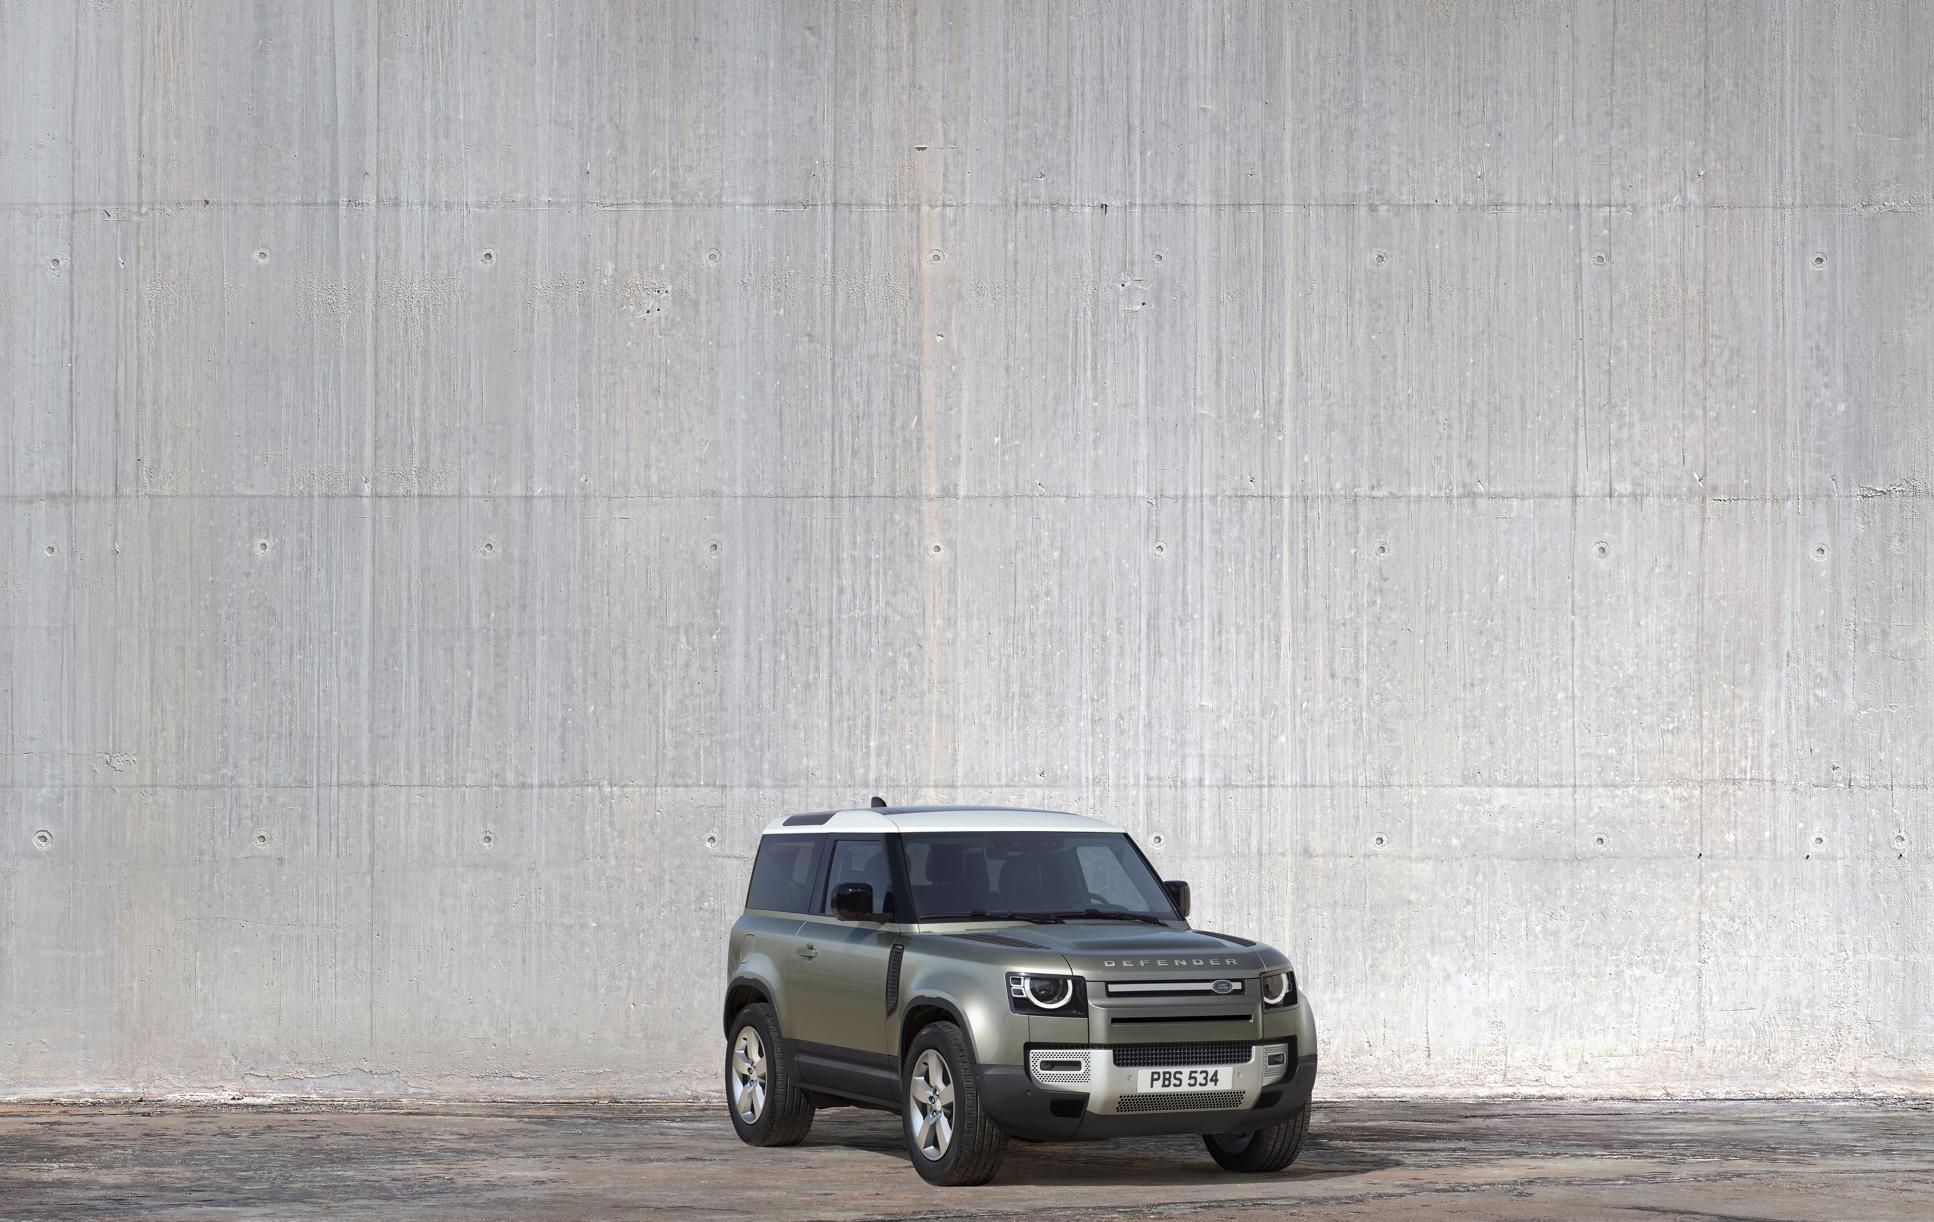 The 2020 Land Rover Defender Is Ready to Conquer Mountains